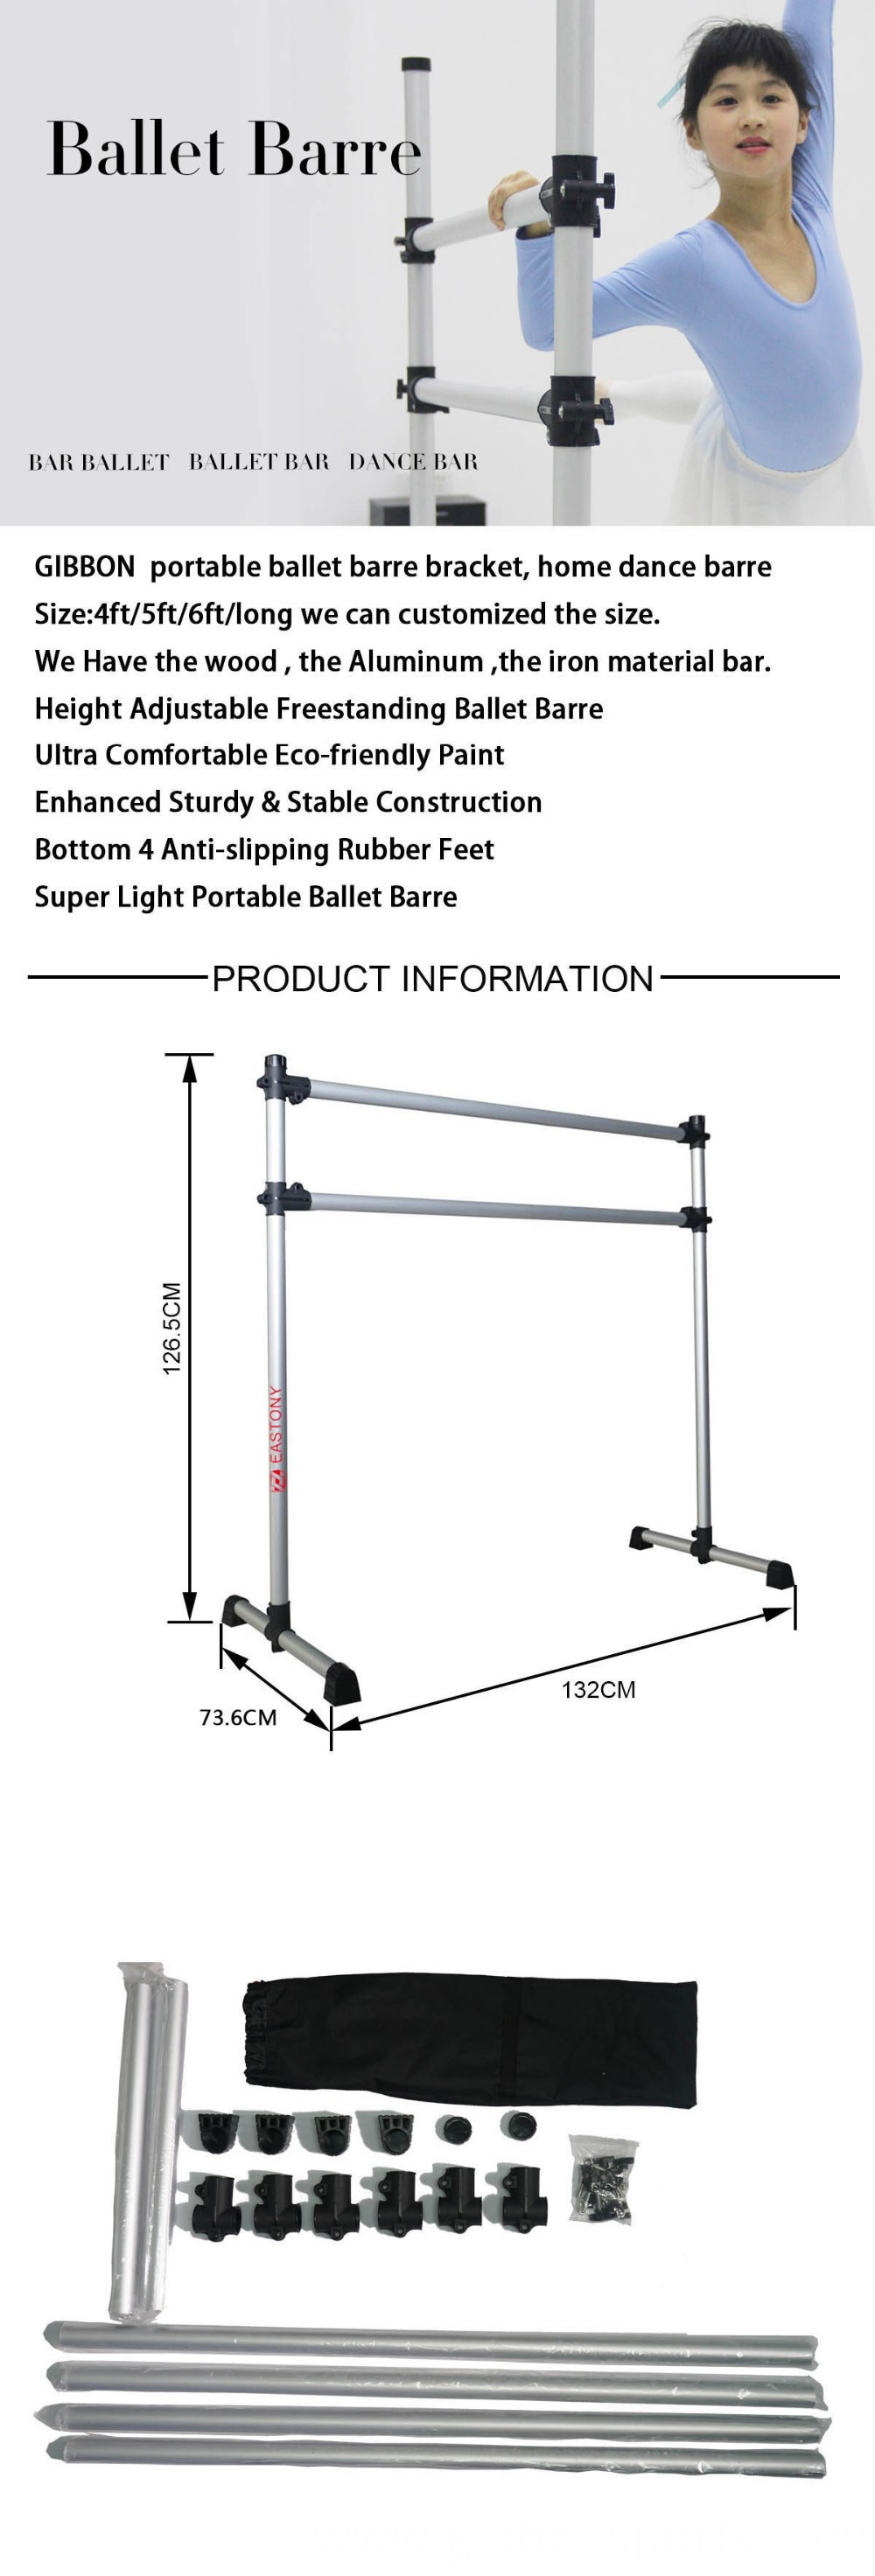 ballet barre product